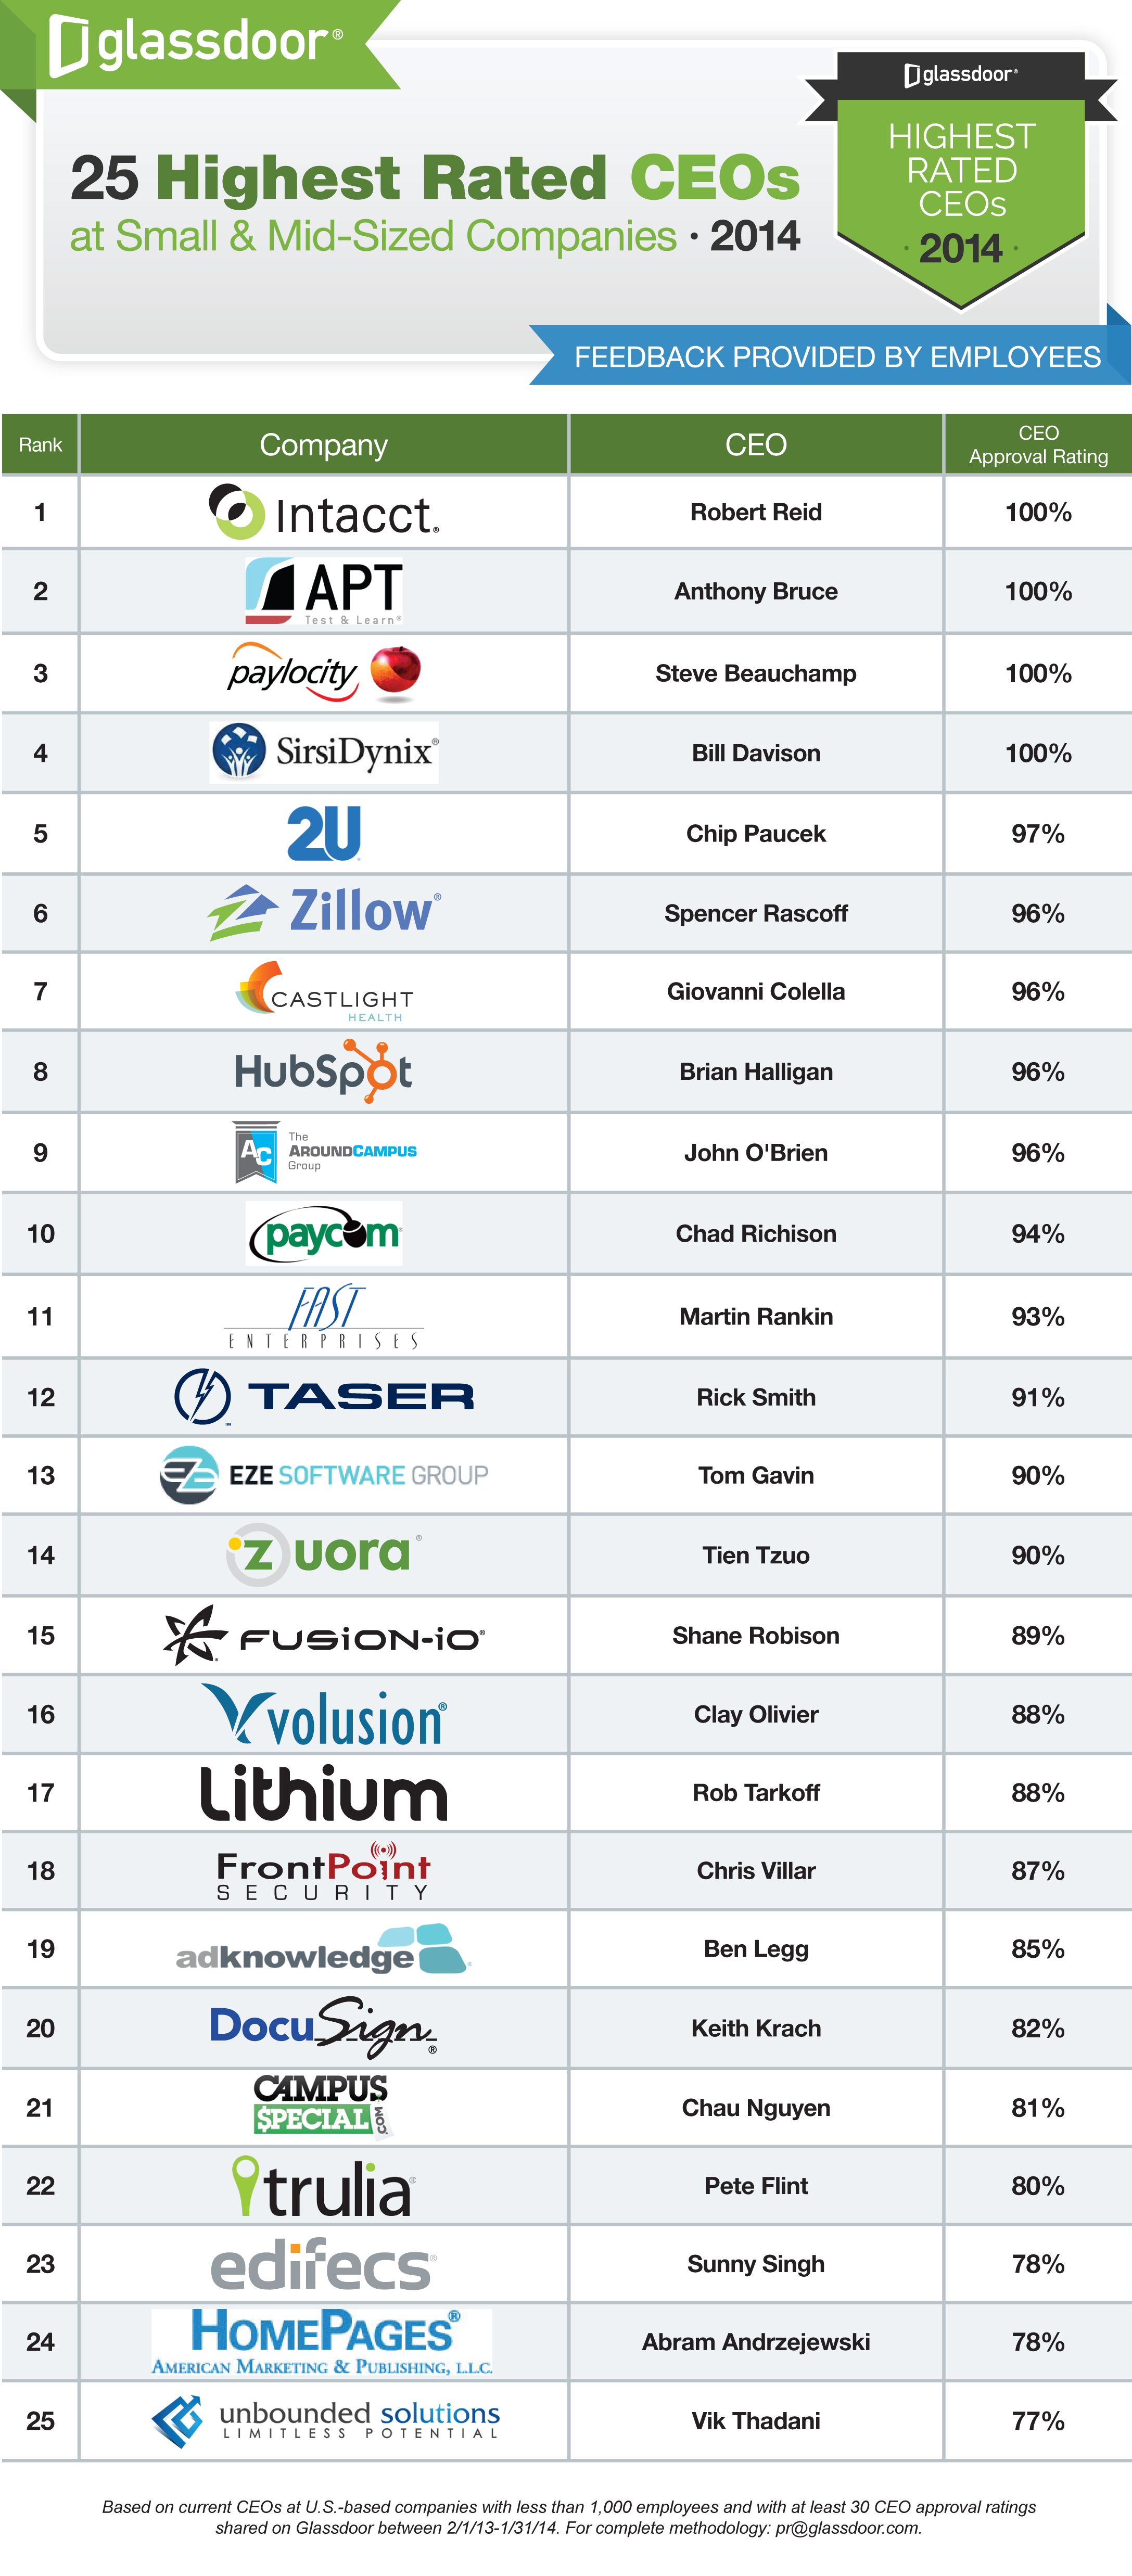 25 Highest Rated CEOs_SMBs_2014